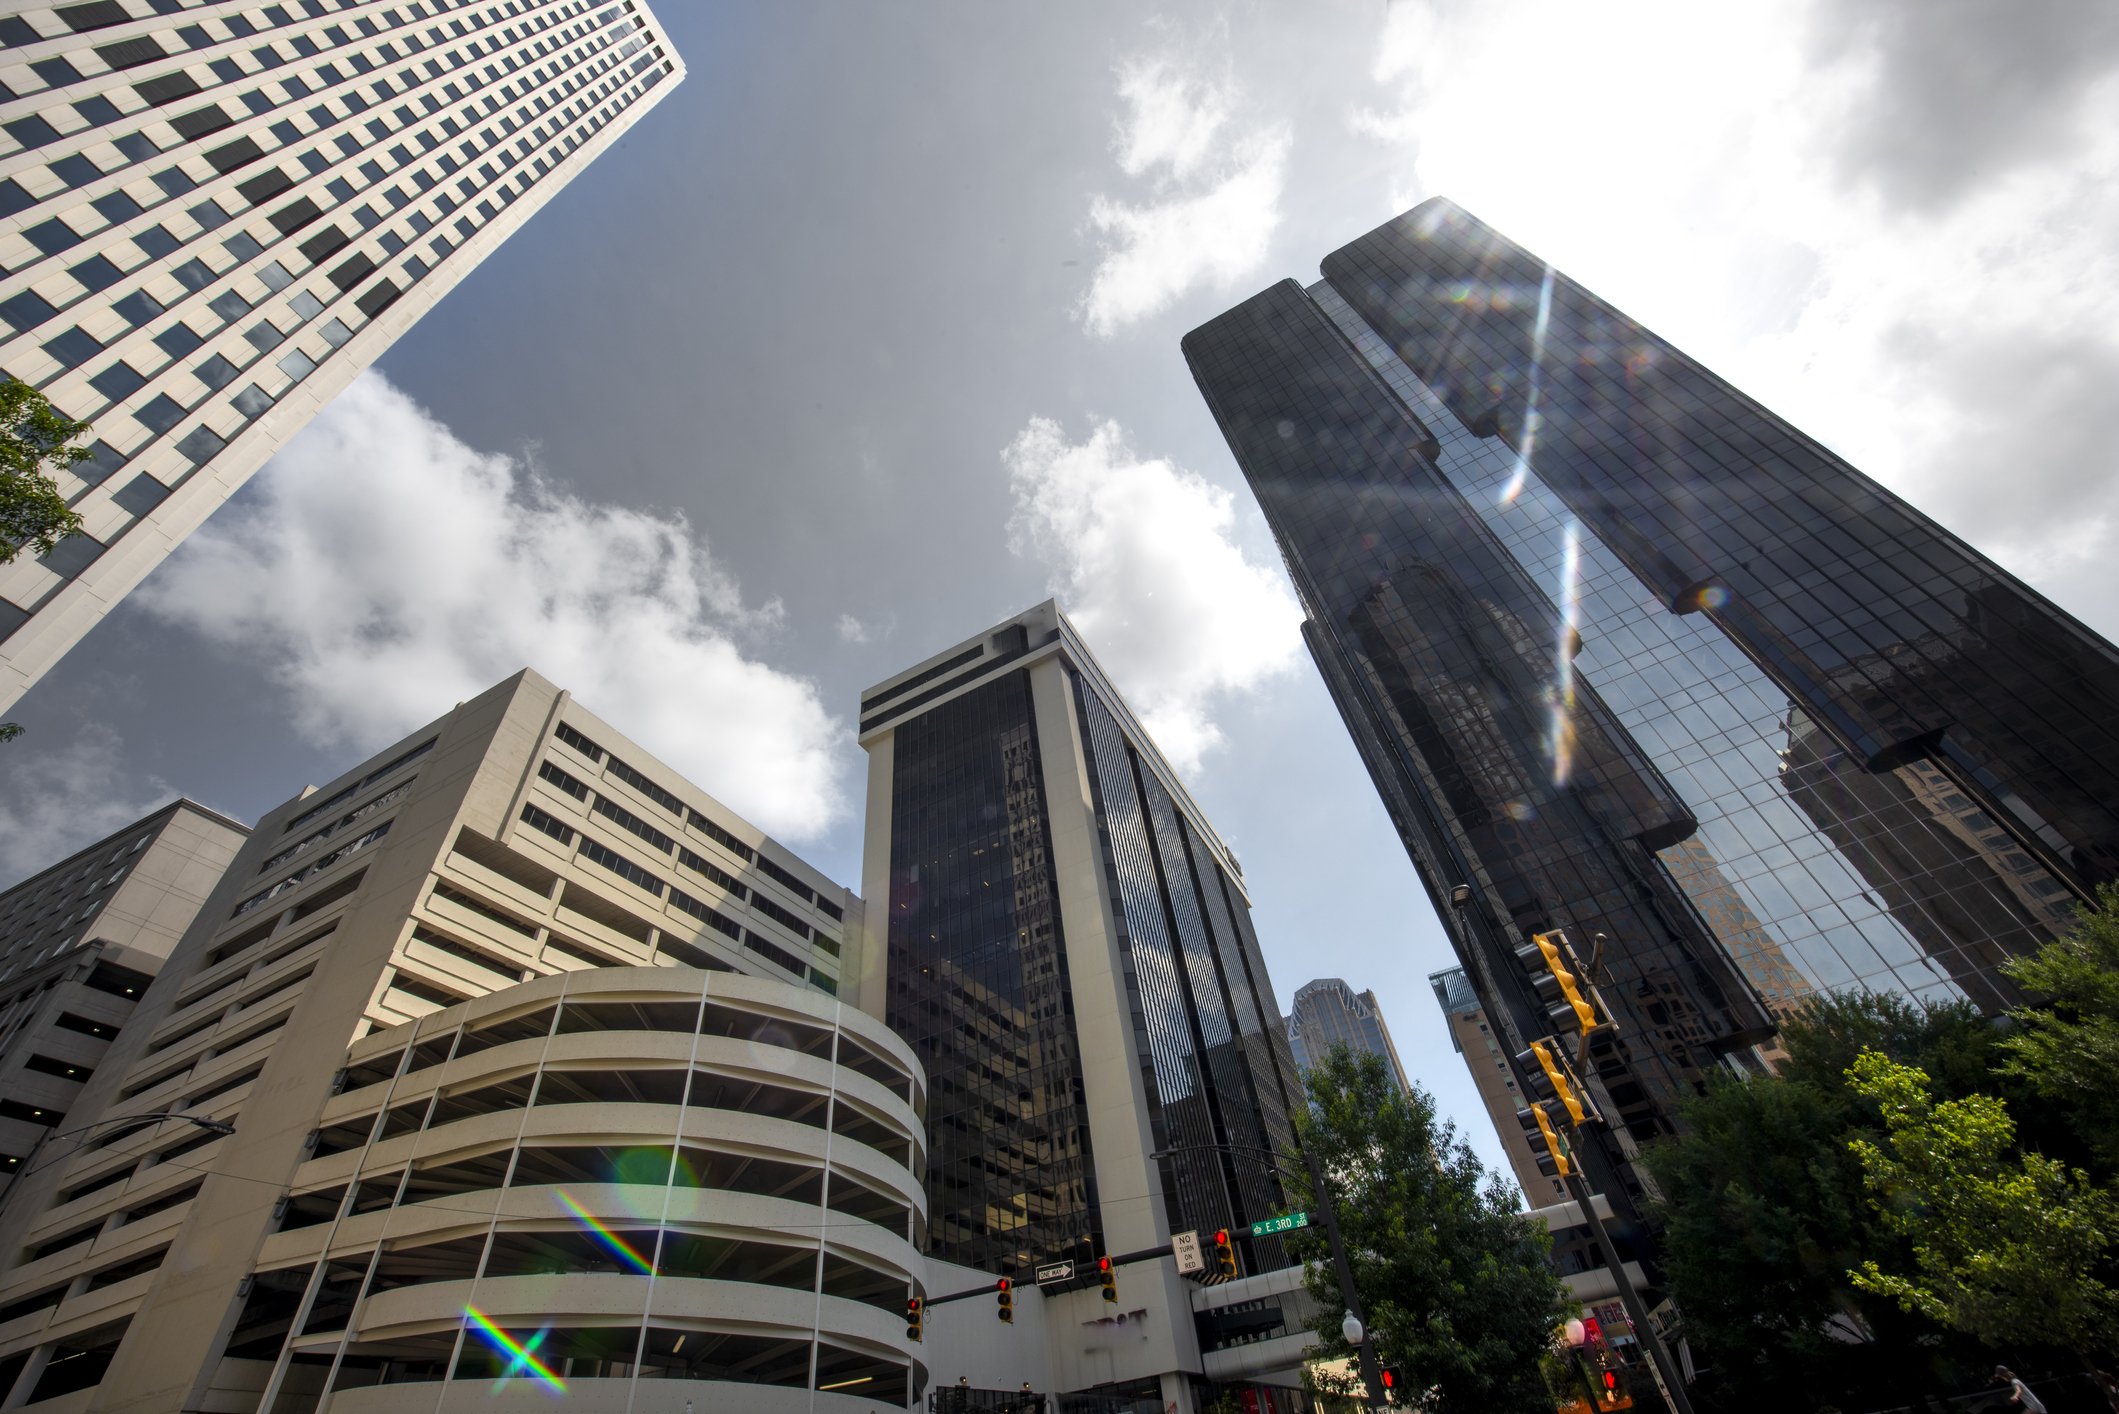 Urban Skyscrapers in Charlotte, North Carolina (Getty Images)